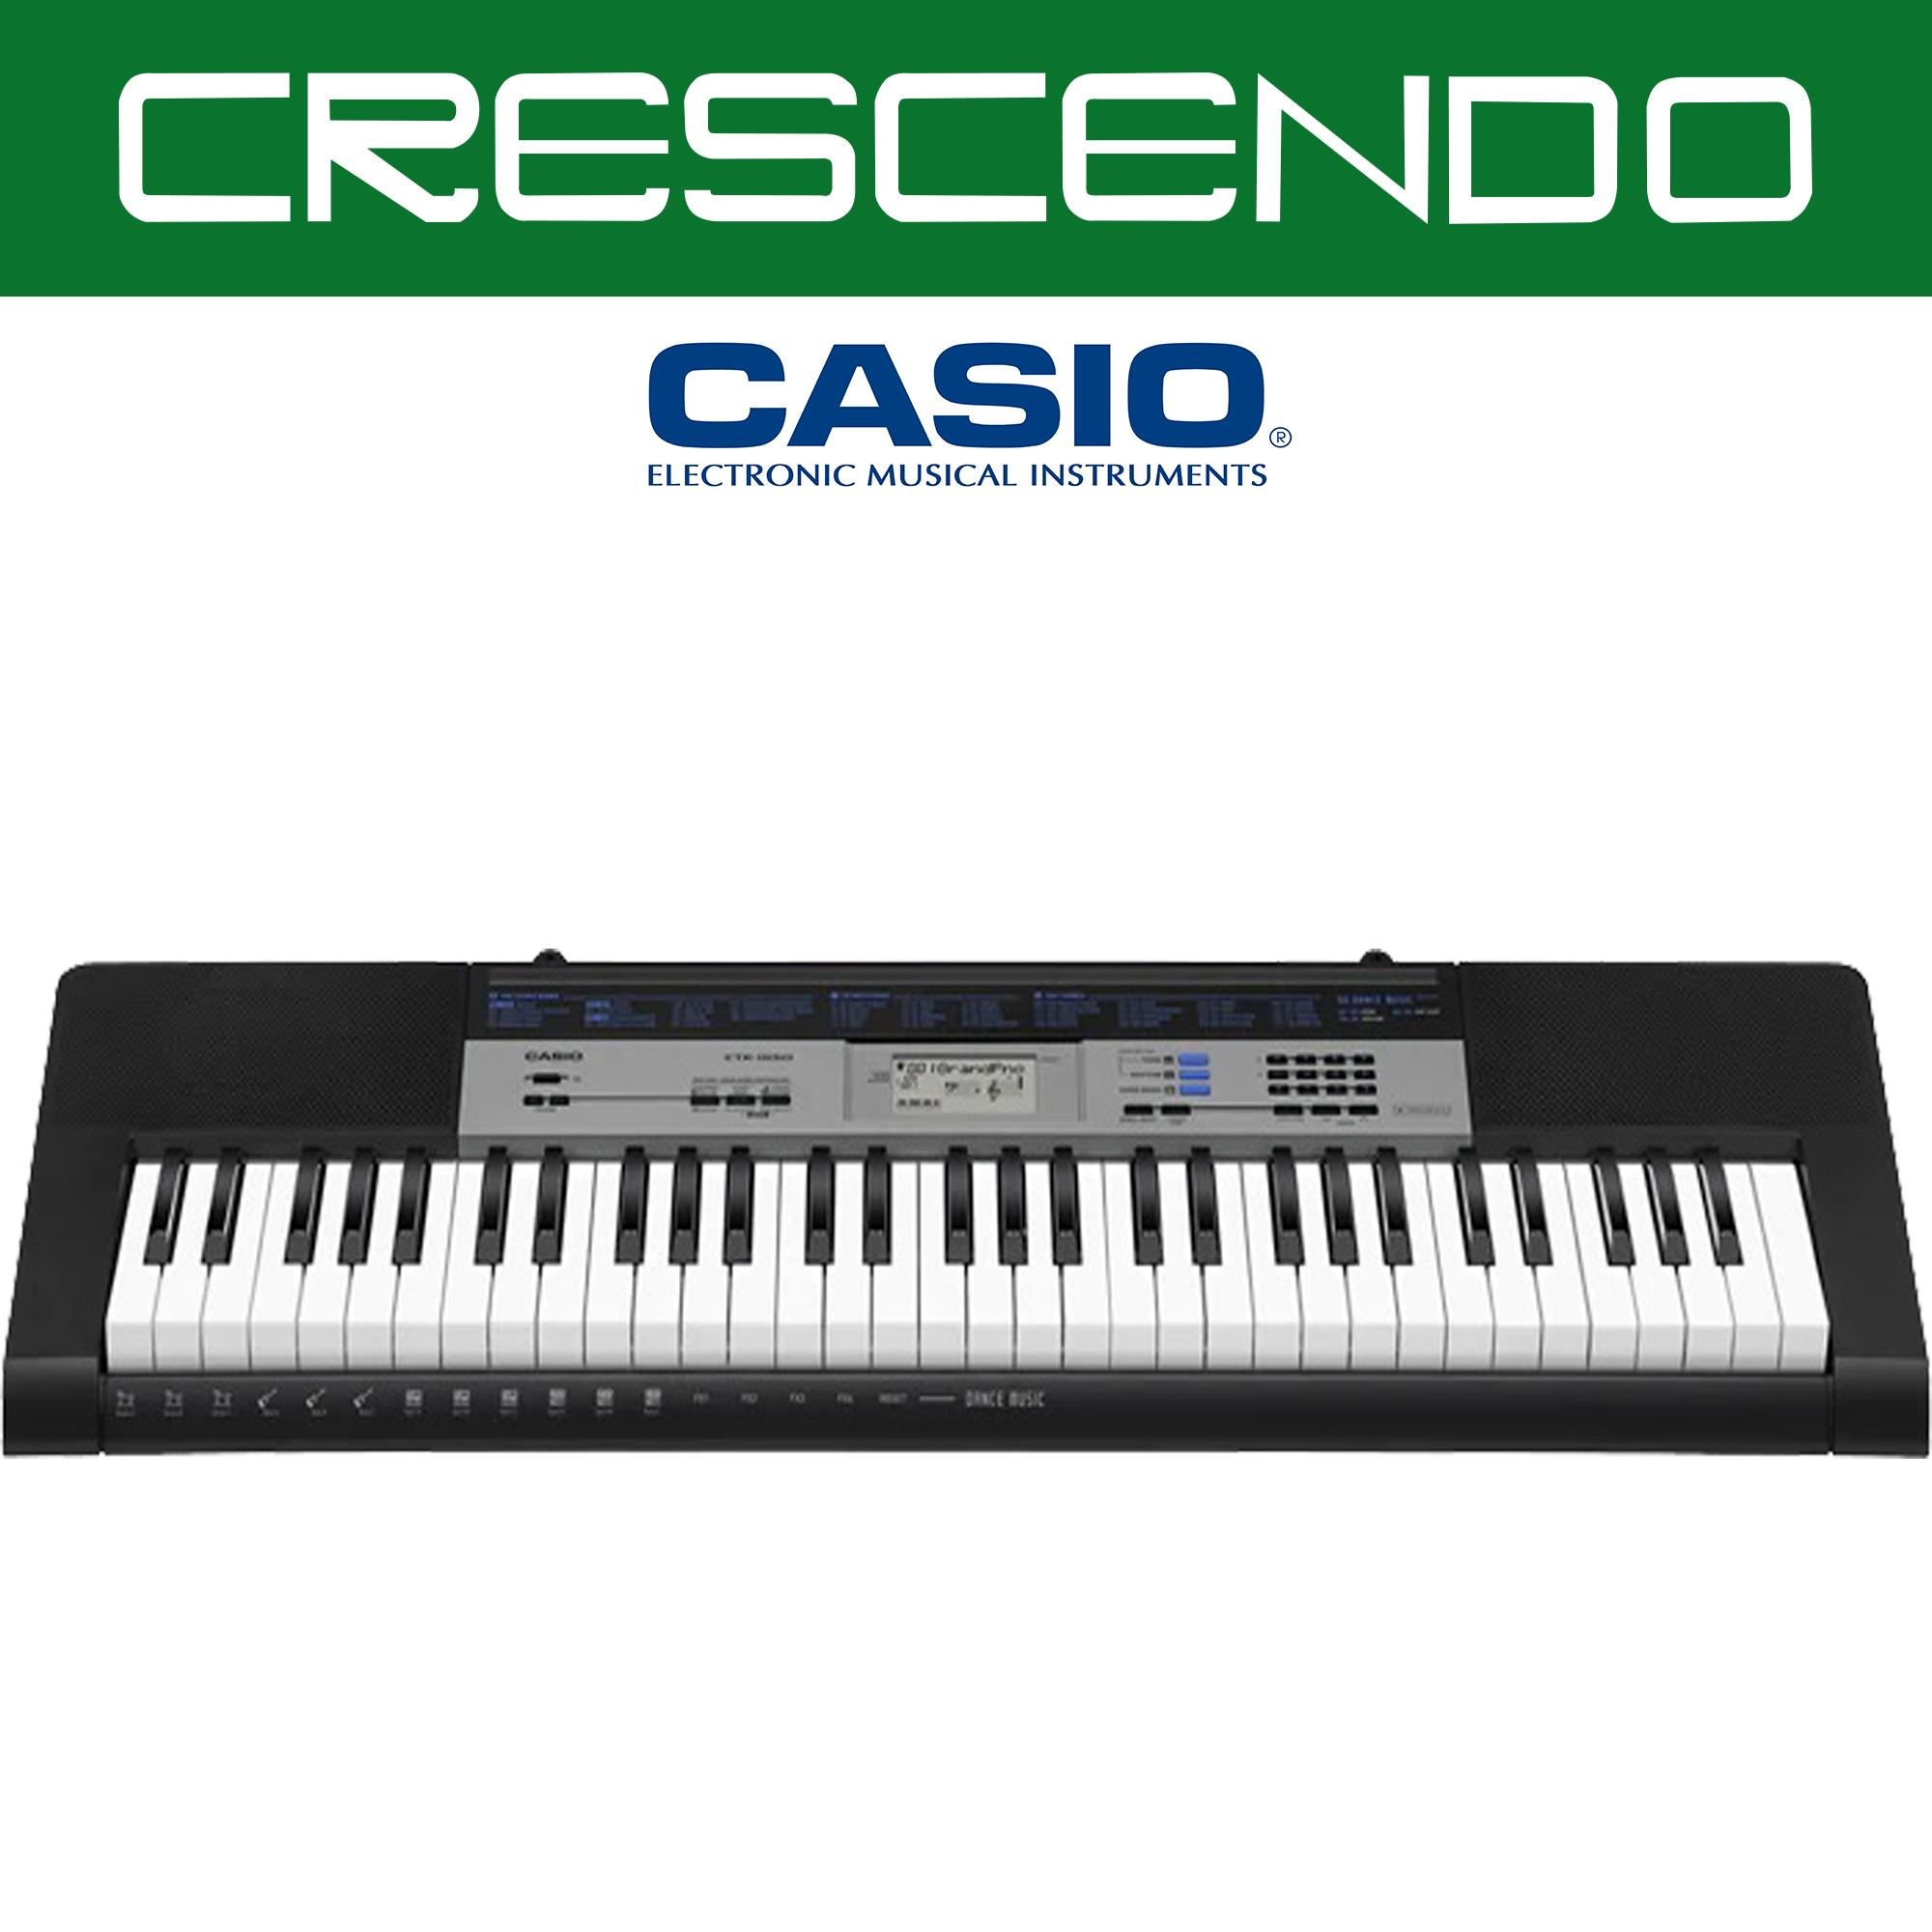 Casio Philippines - Casio Keyboard & Piano for sale - prices